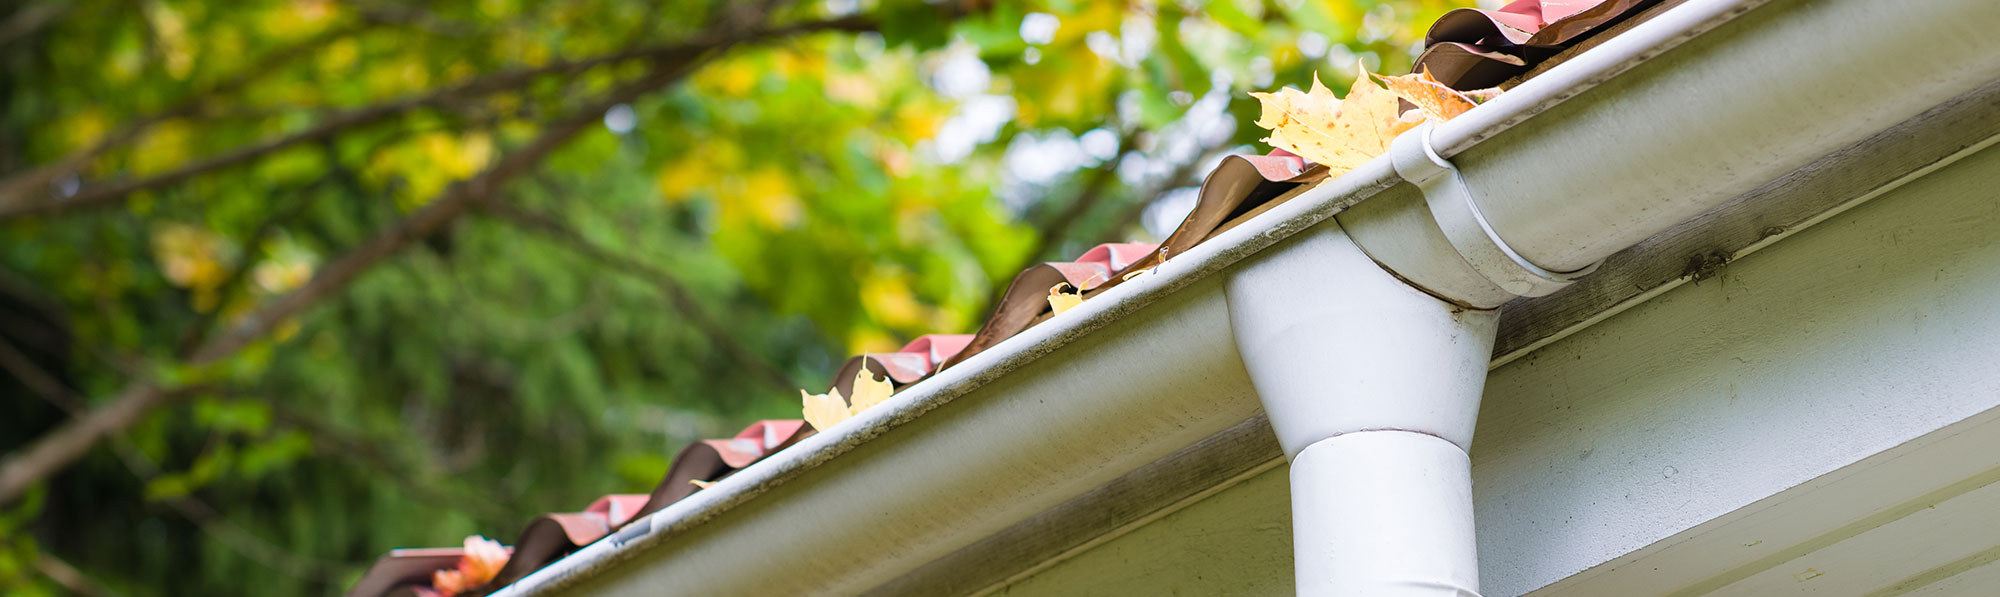 Leaves on a Gutter